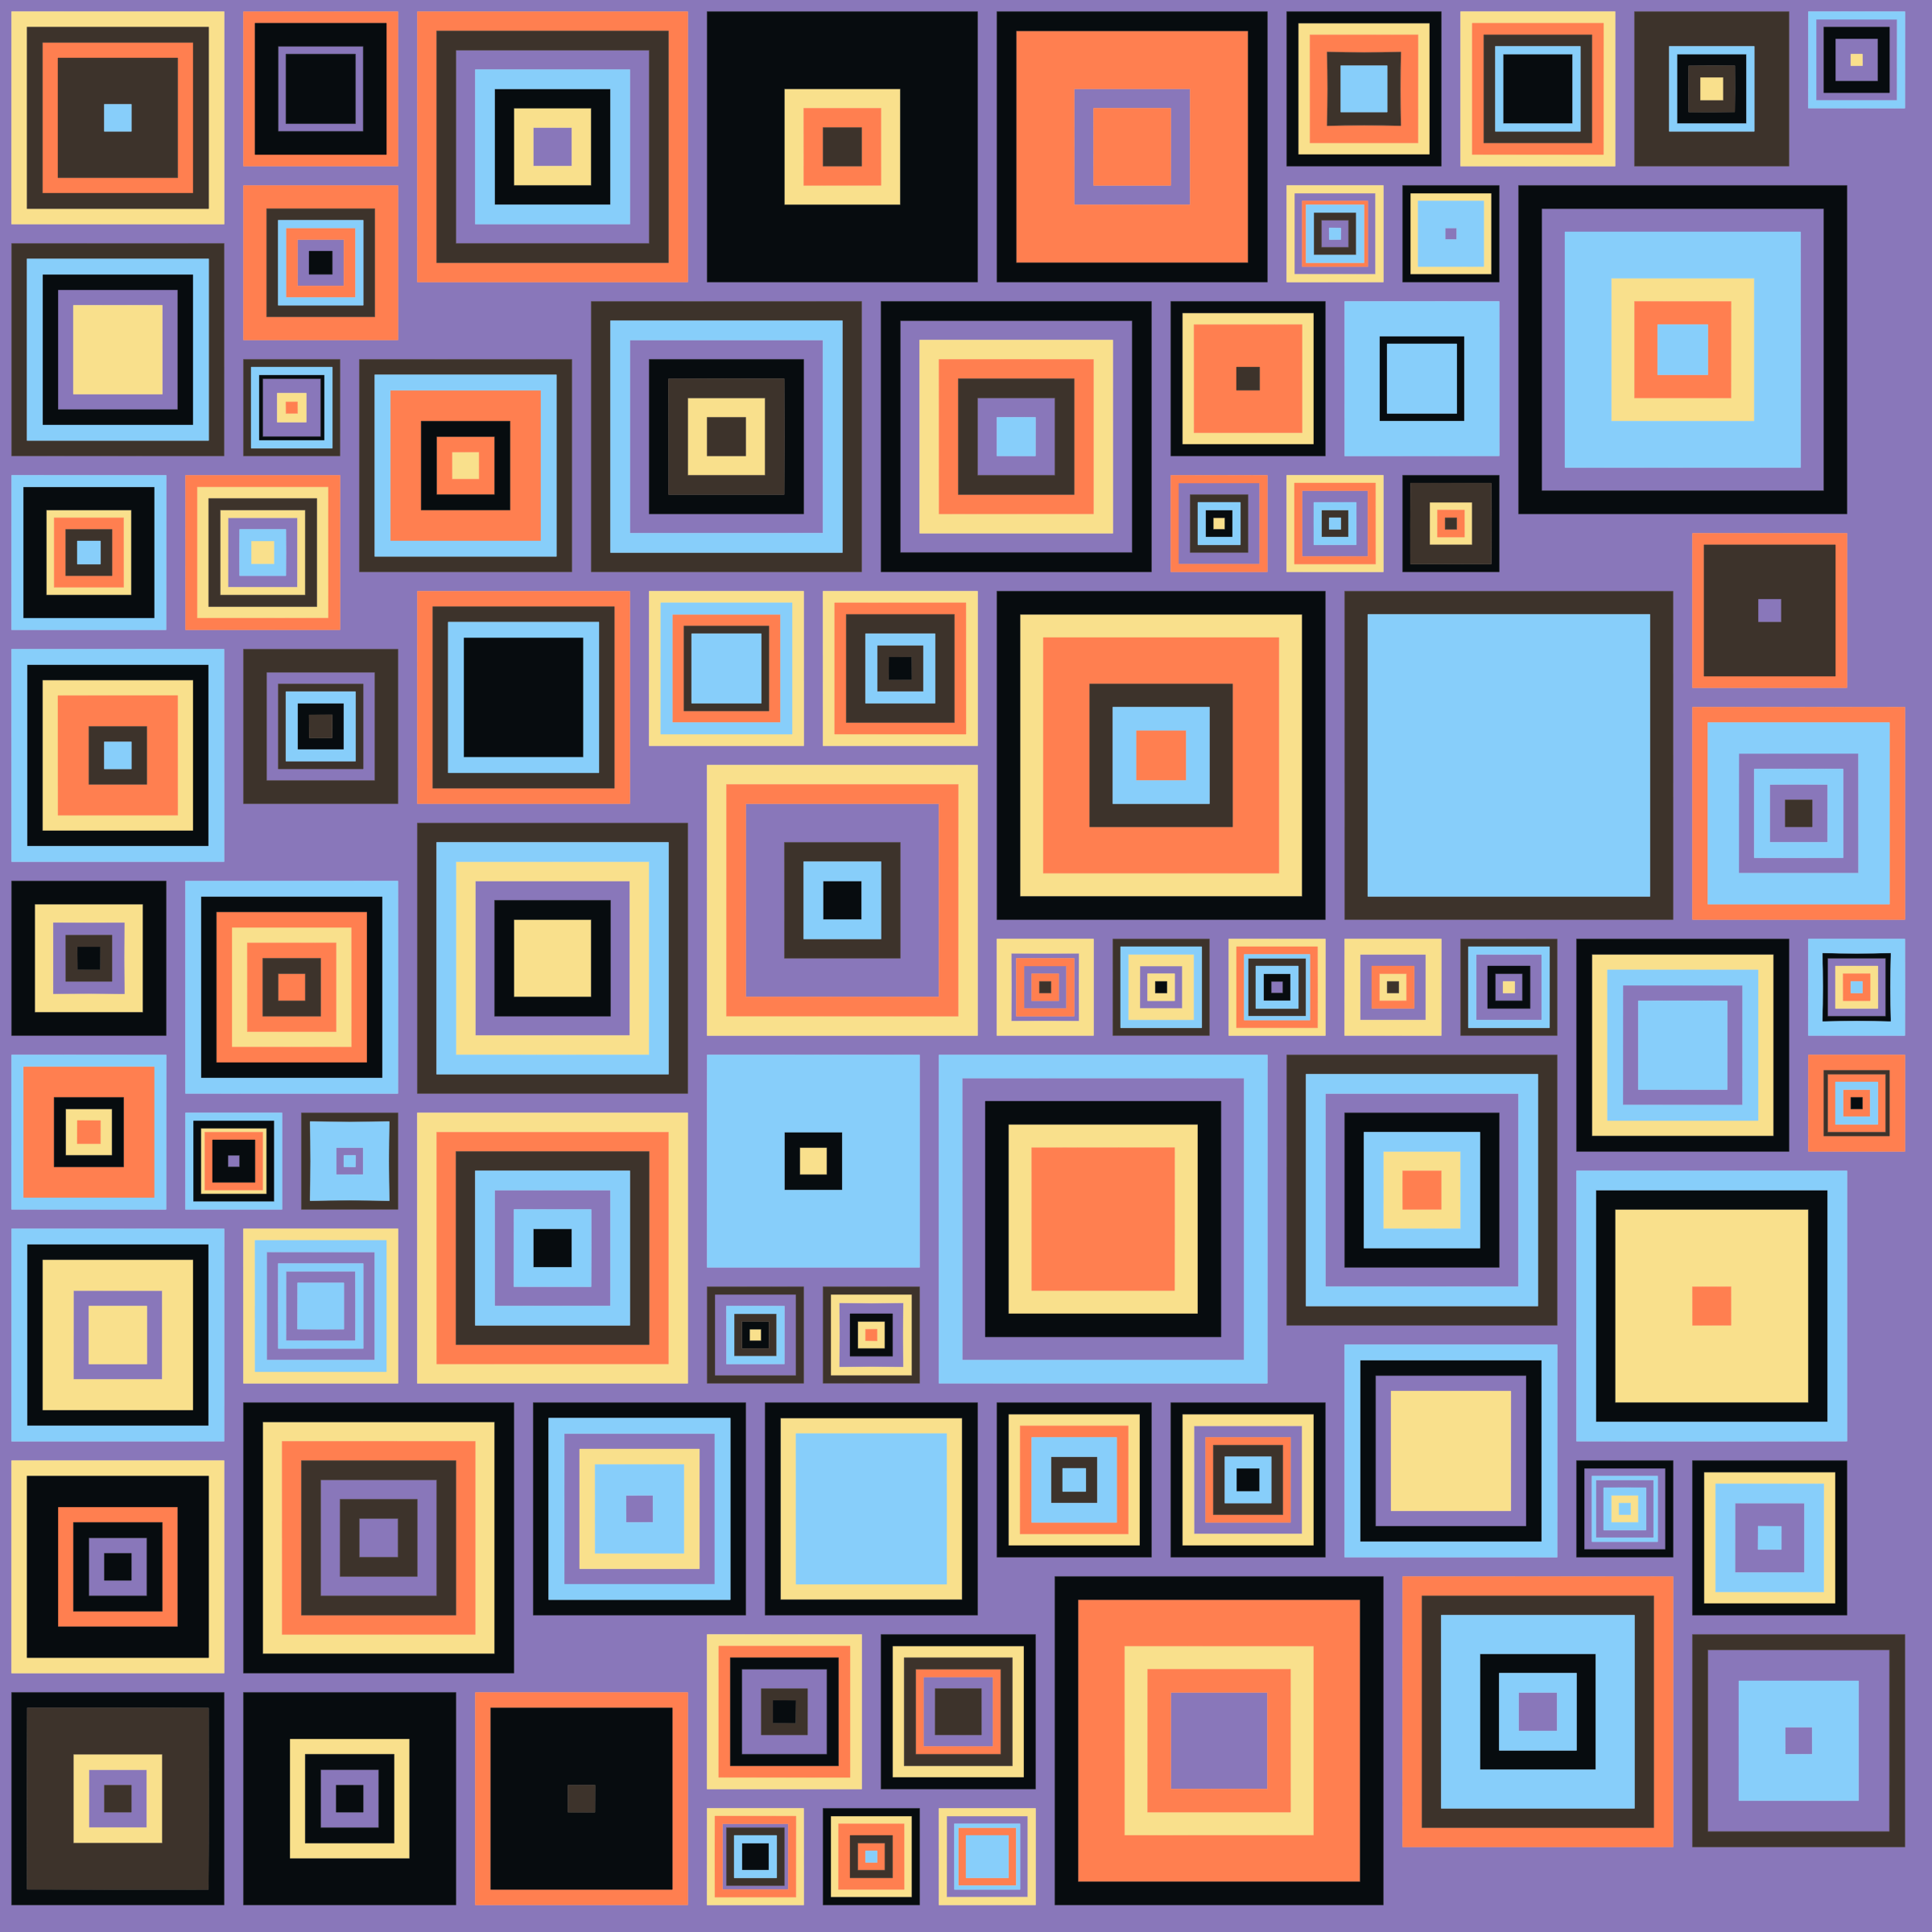 Abstract Colorful Squares by GDJ